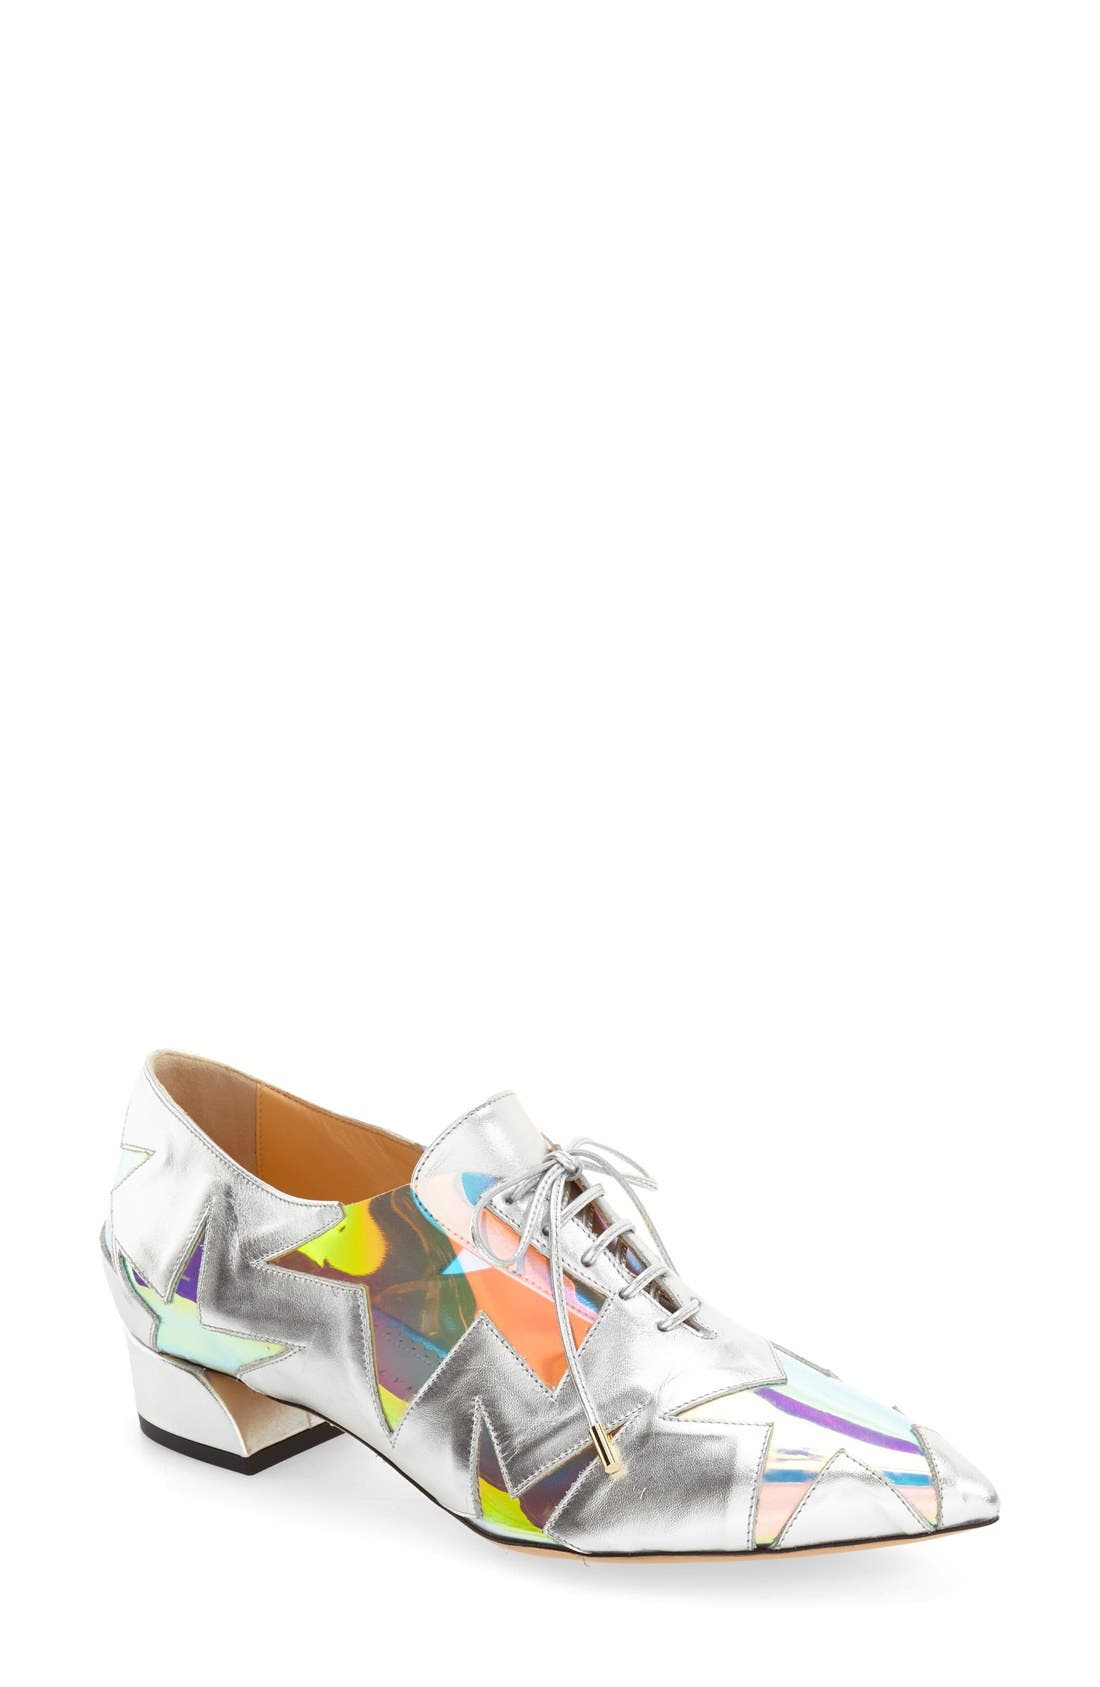 Alternate Image 1 Selected - Charlotte Olympia 'Starman' Pointy-Toe Oxford (Women)